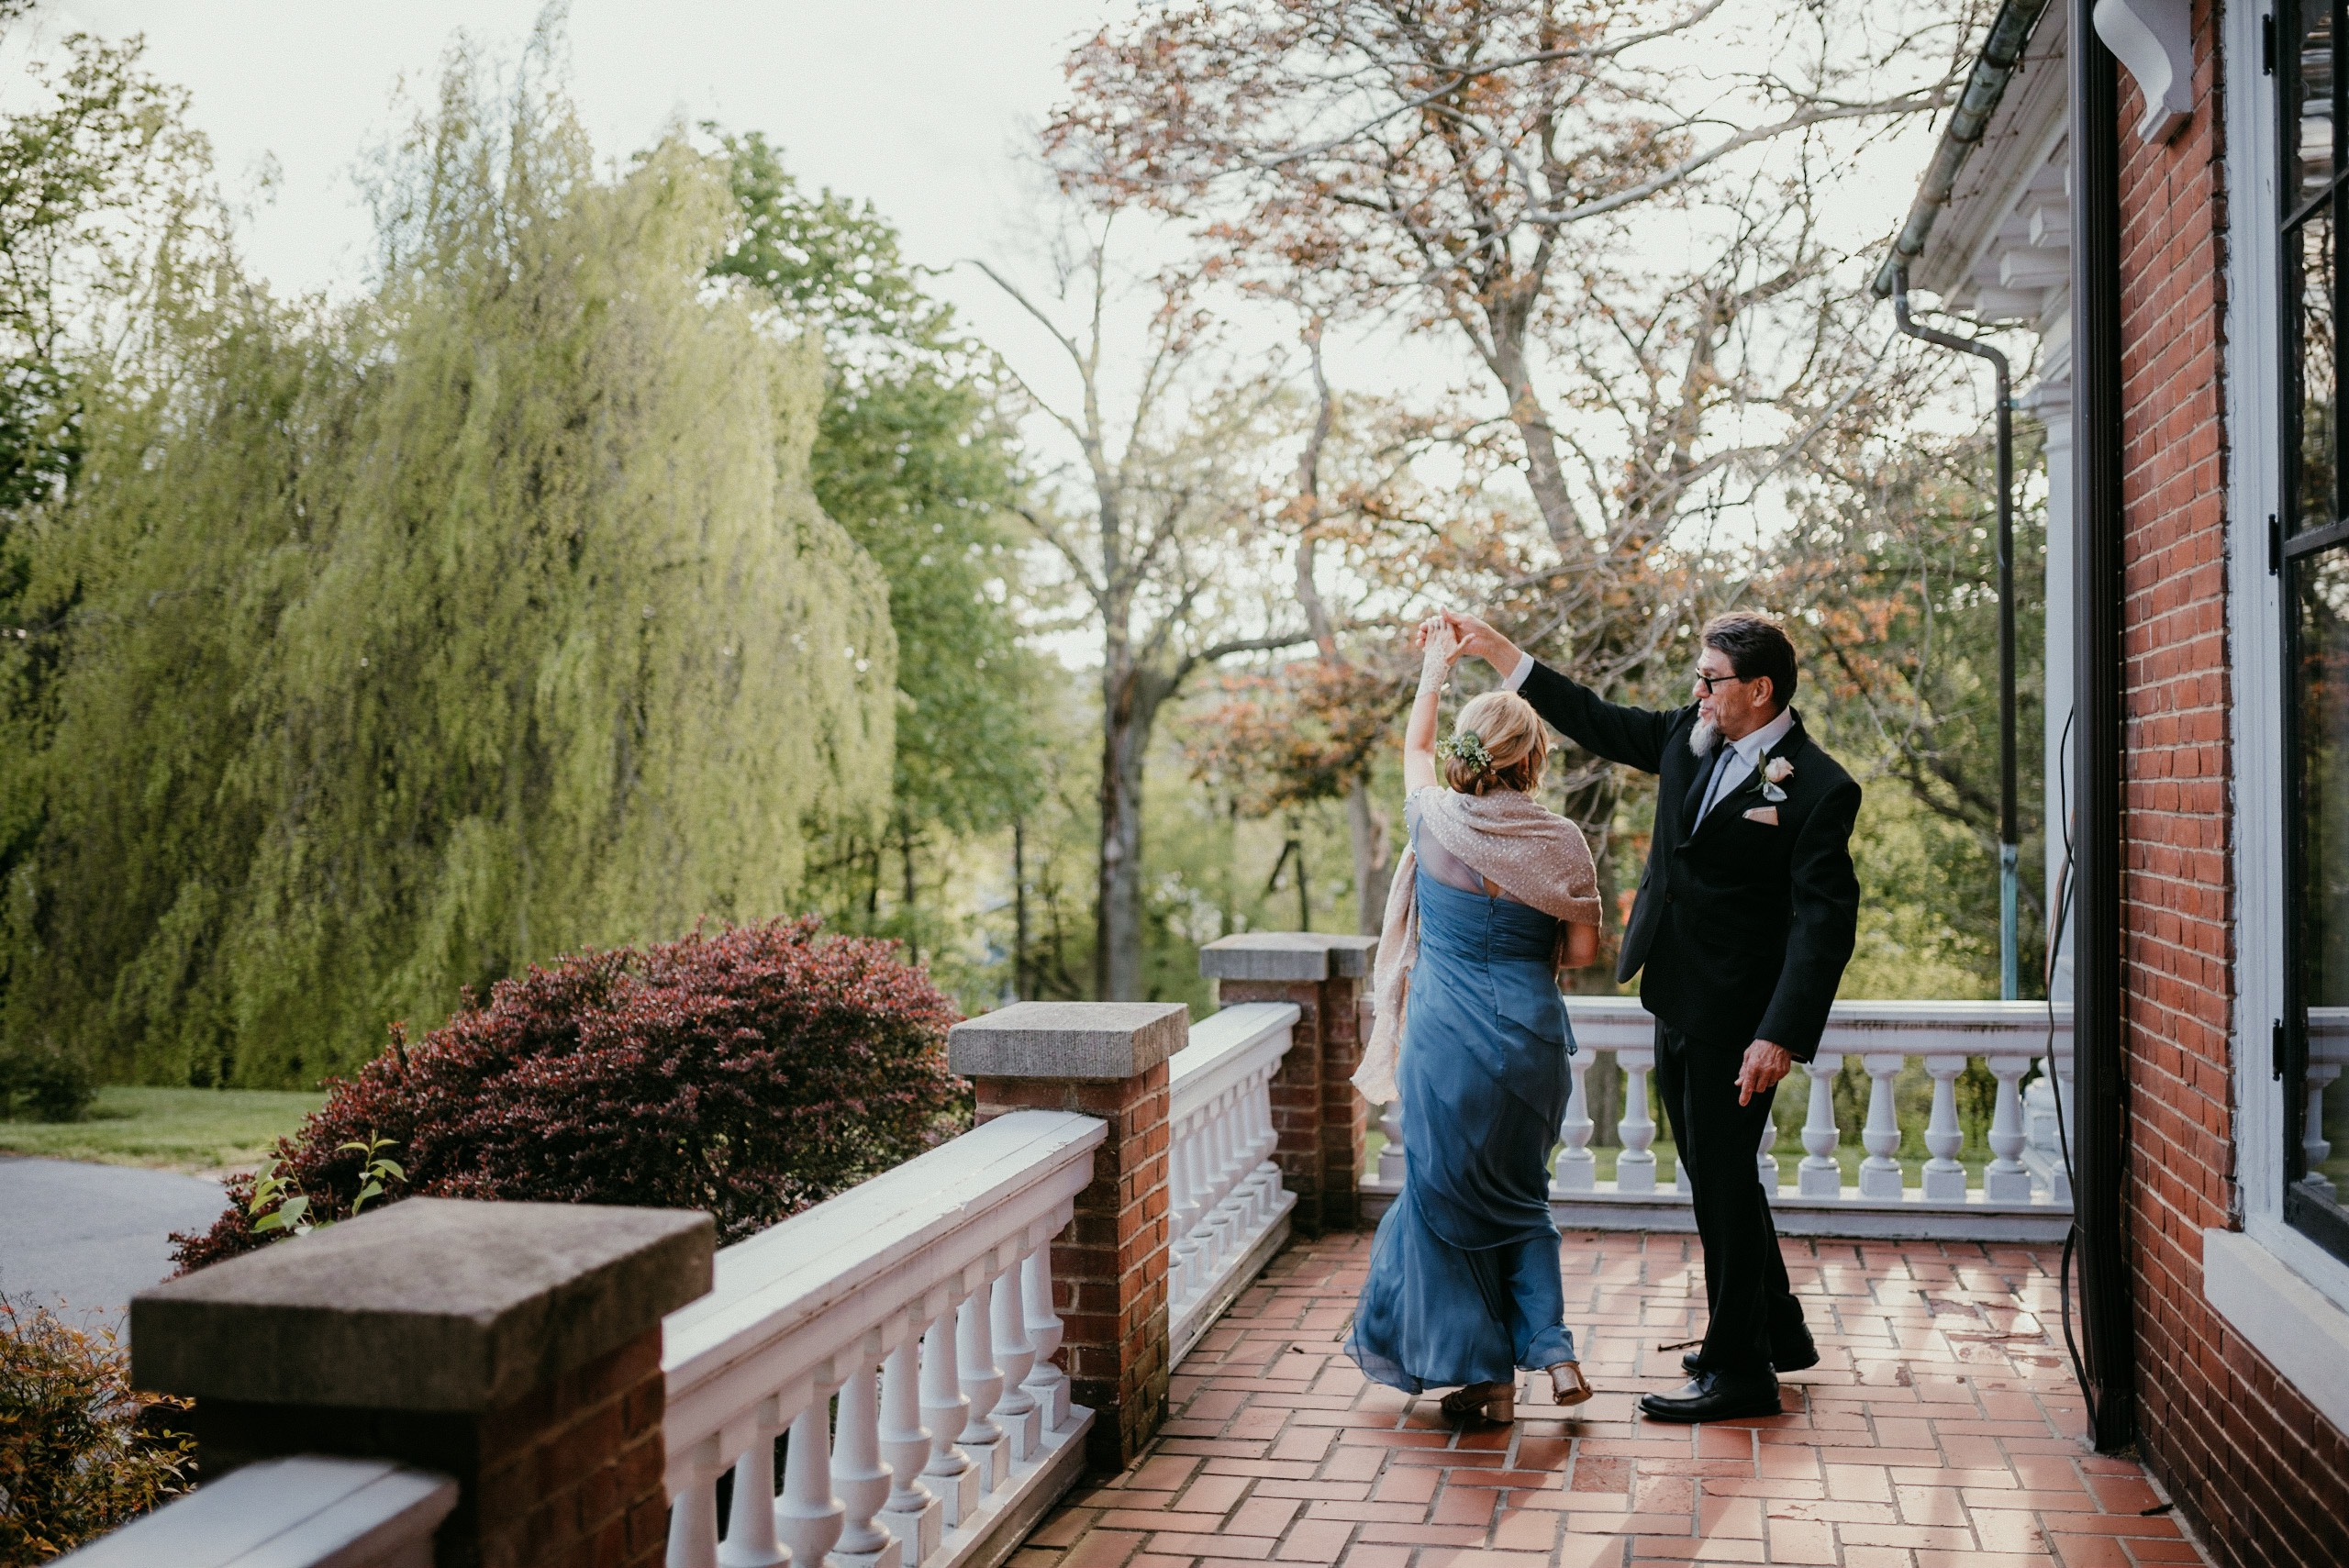 A wedding couple is dancing on the porch